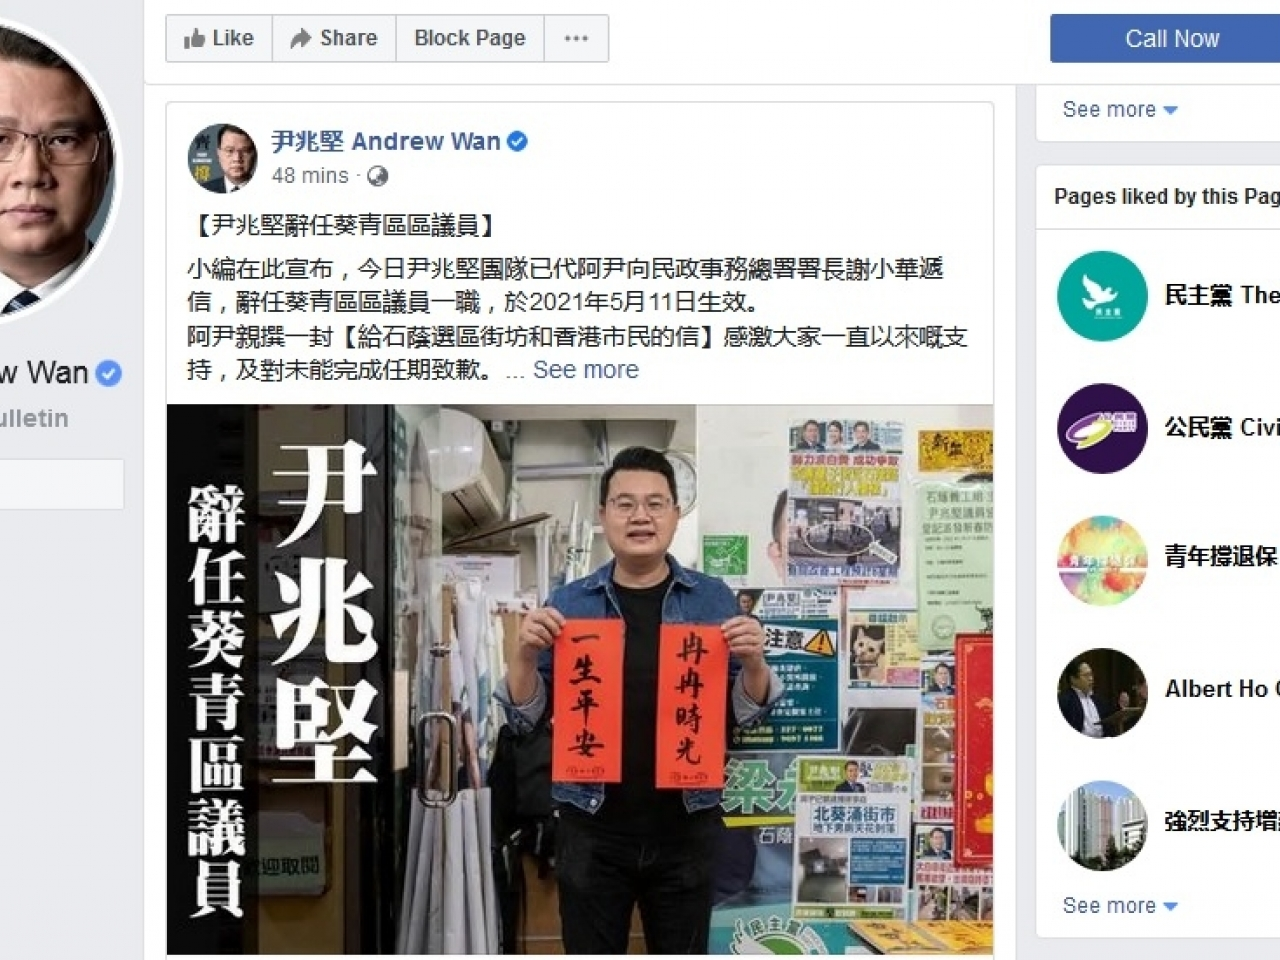 Andrew Wan announced his resignation from Kwai Tsing District Council on Facebook.